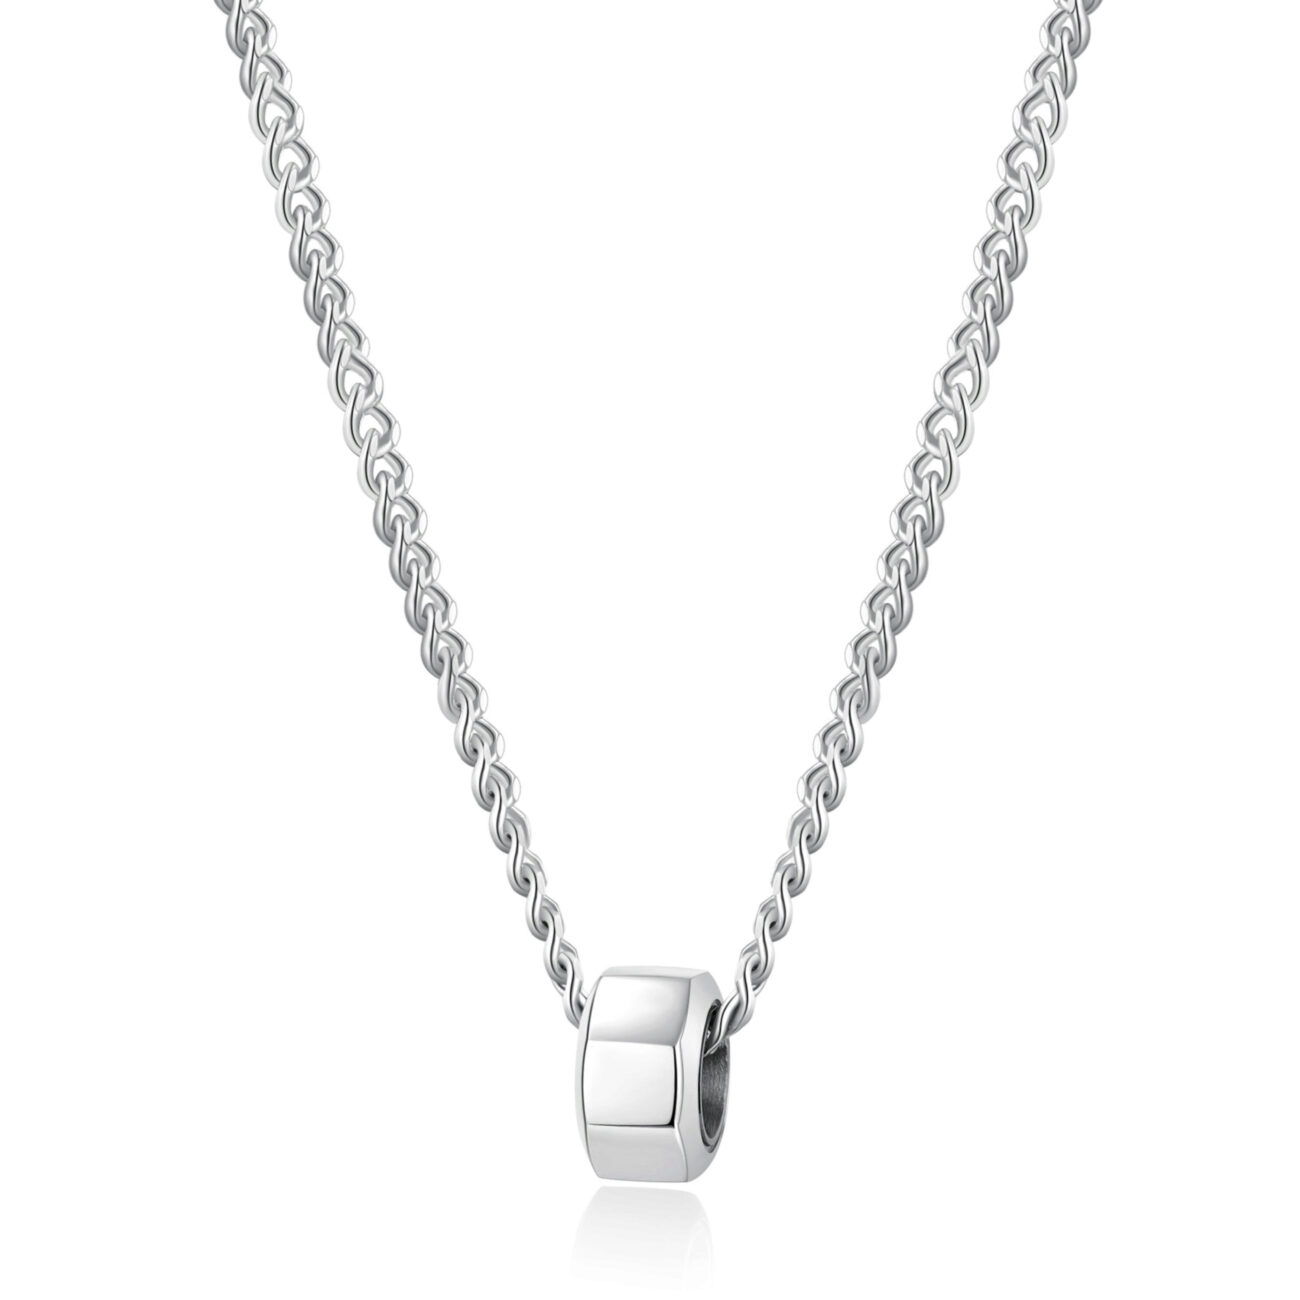 316L stainless steel necklace.